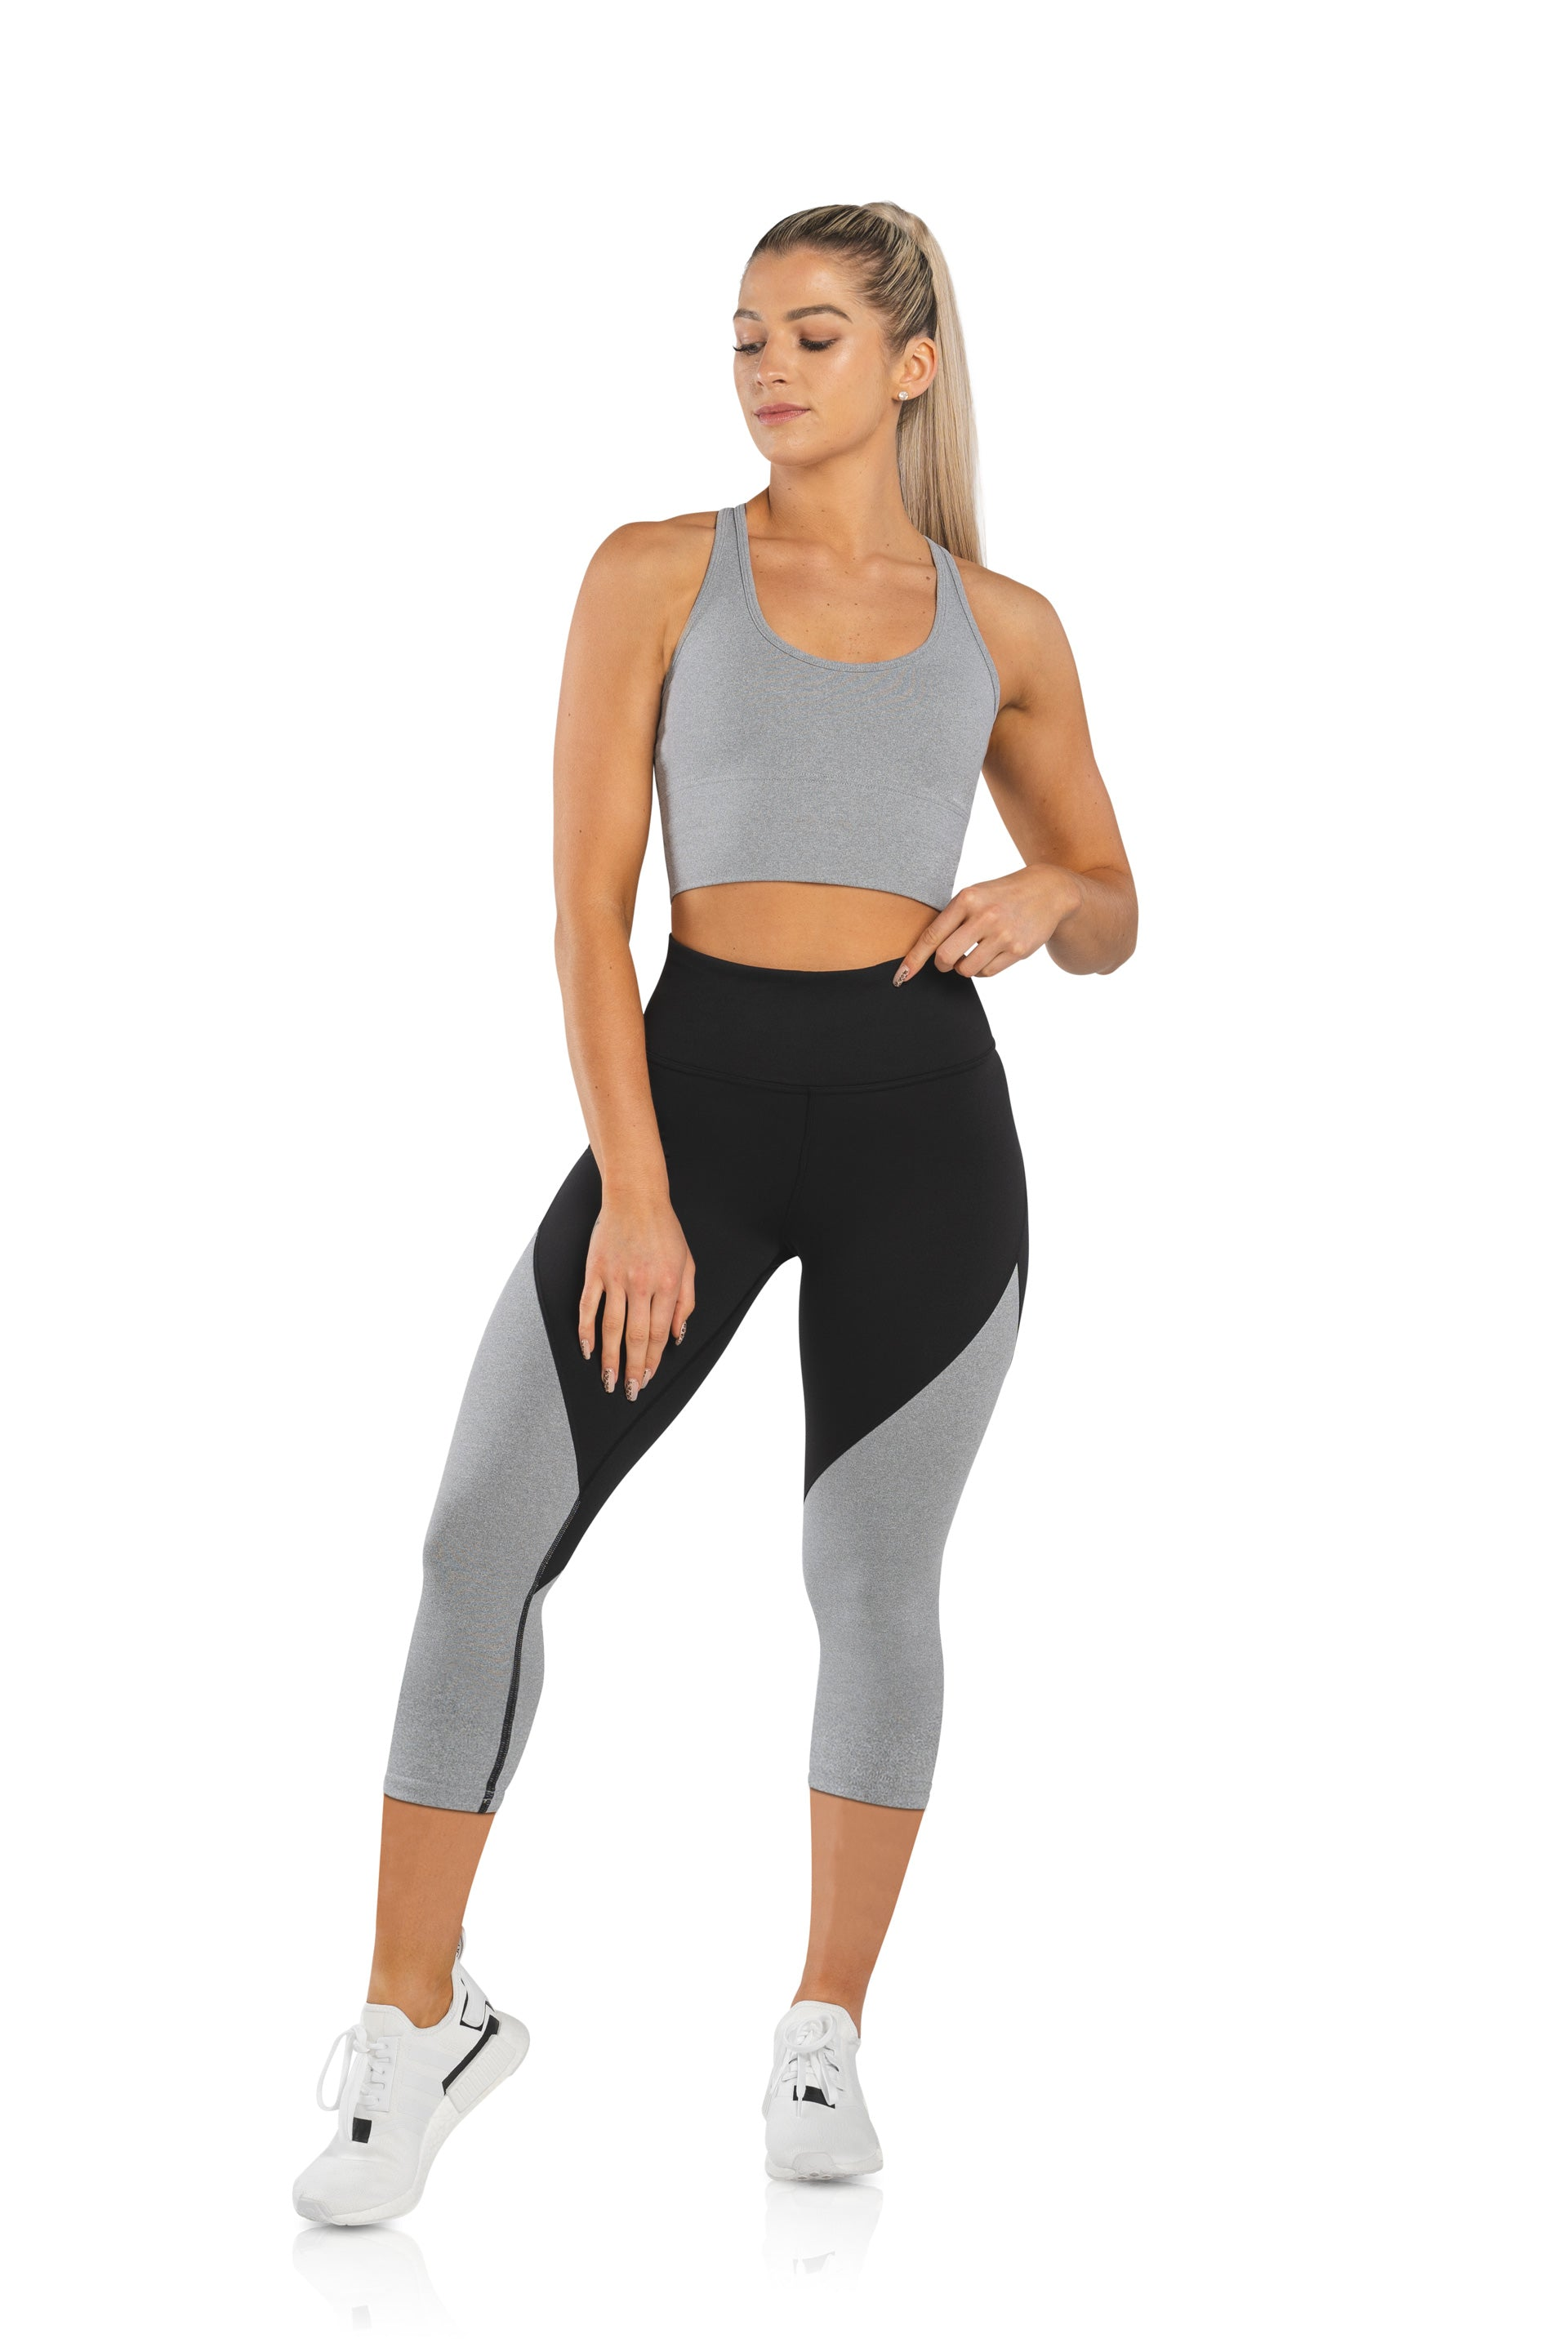 SCULPT 3/4 TIGHTS - BLACK / DOVE GREY MARL - PRE ORDER